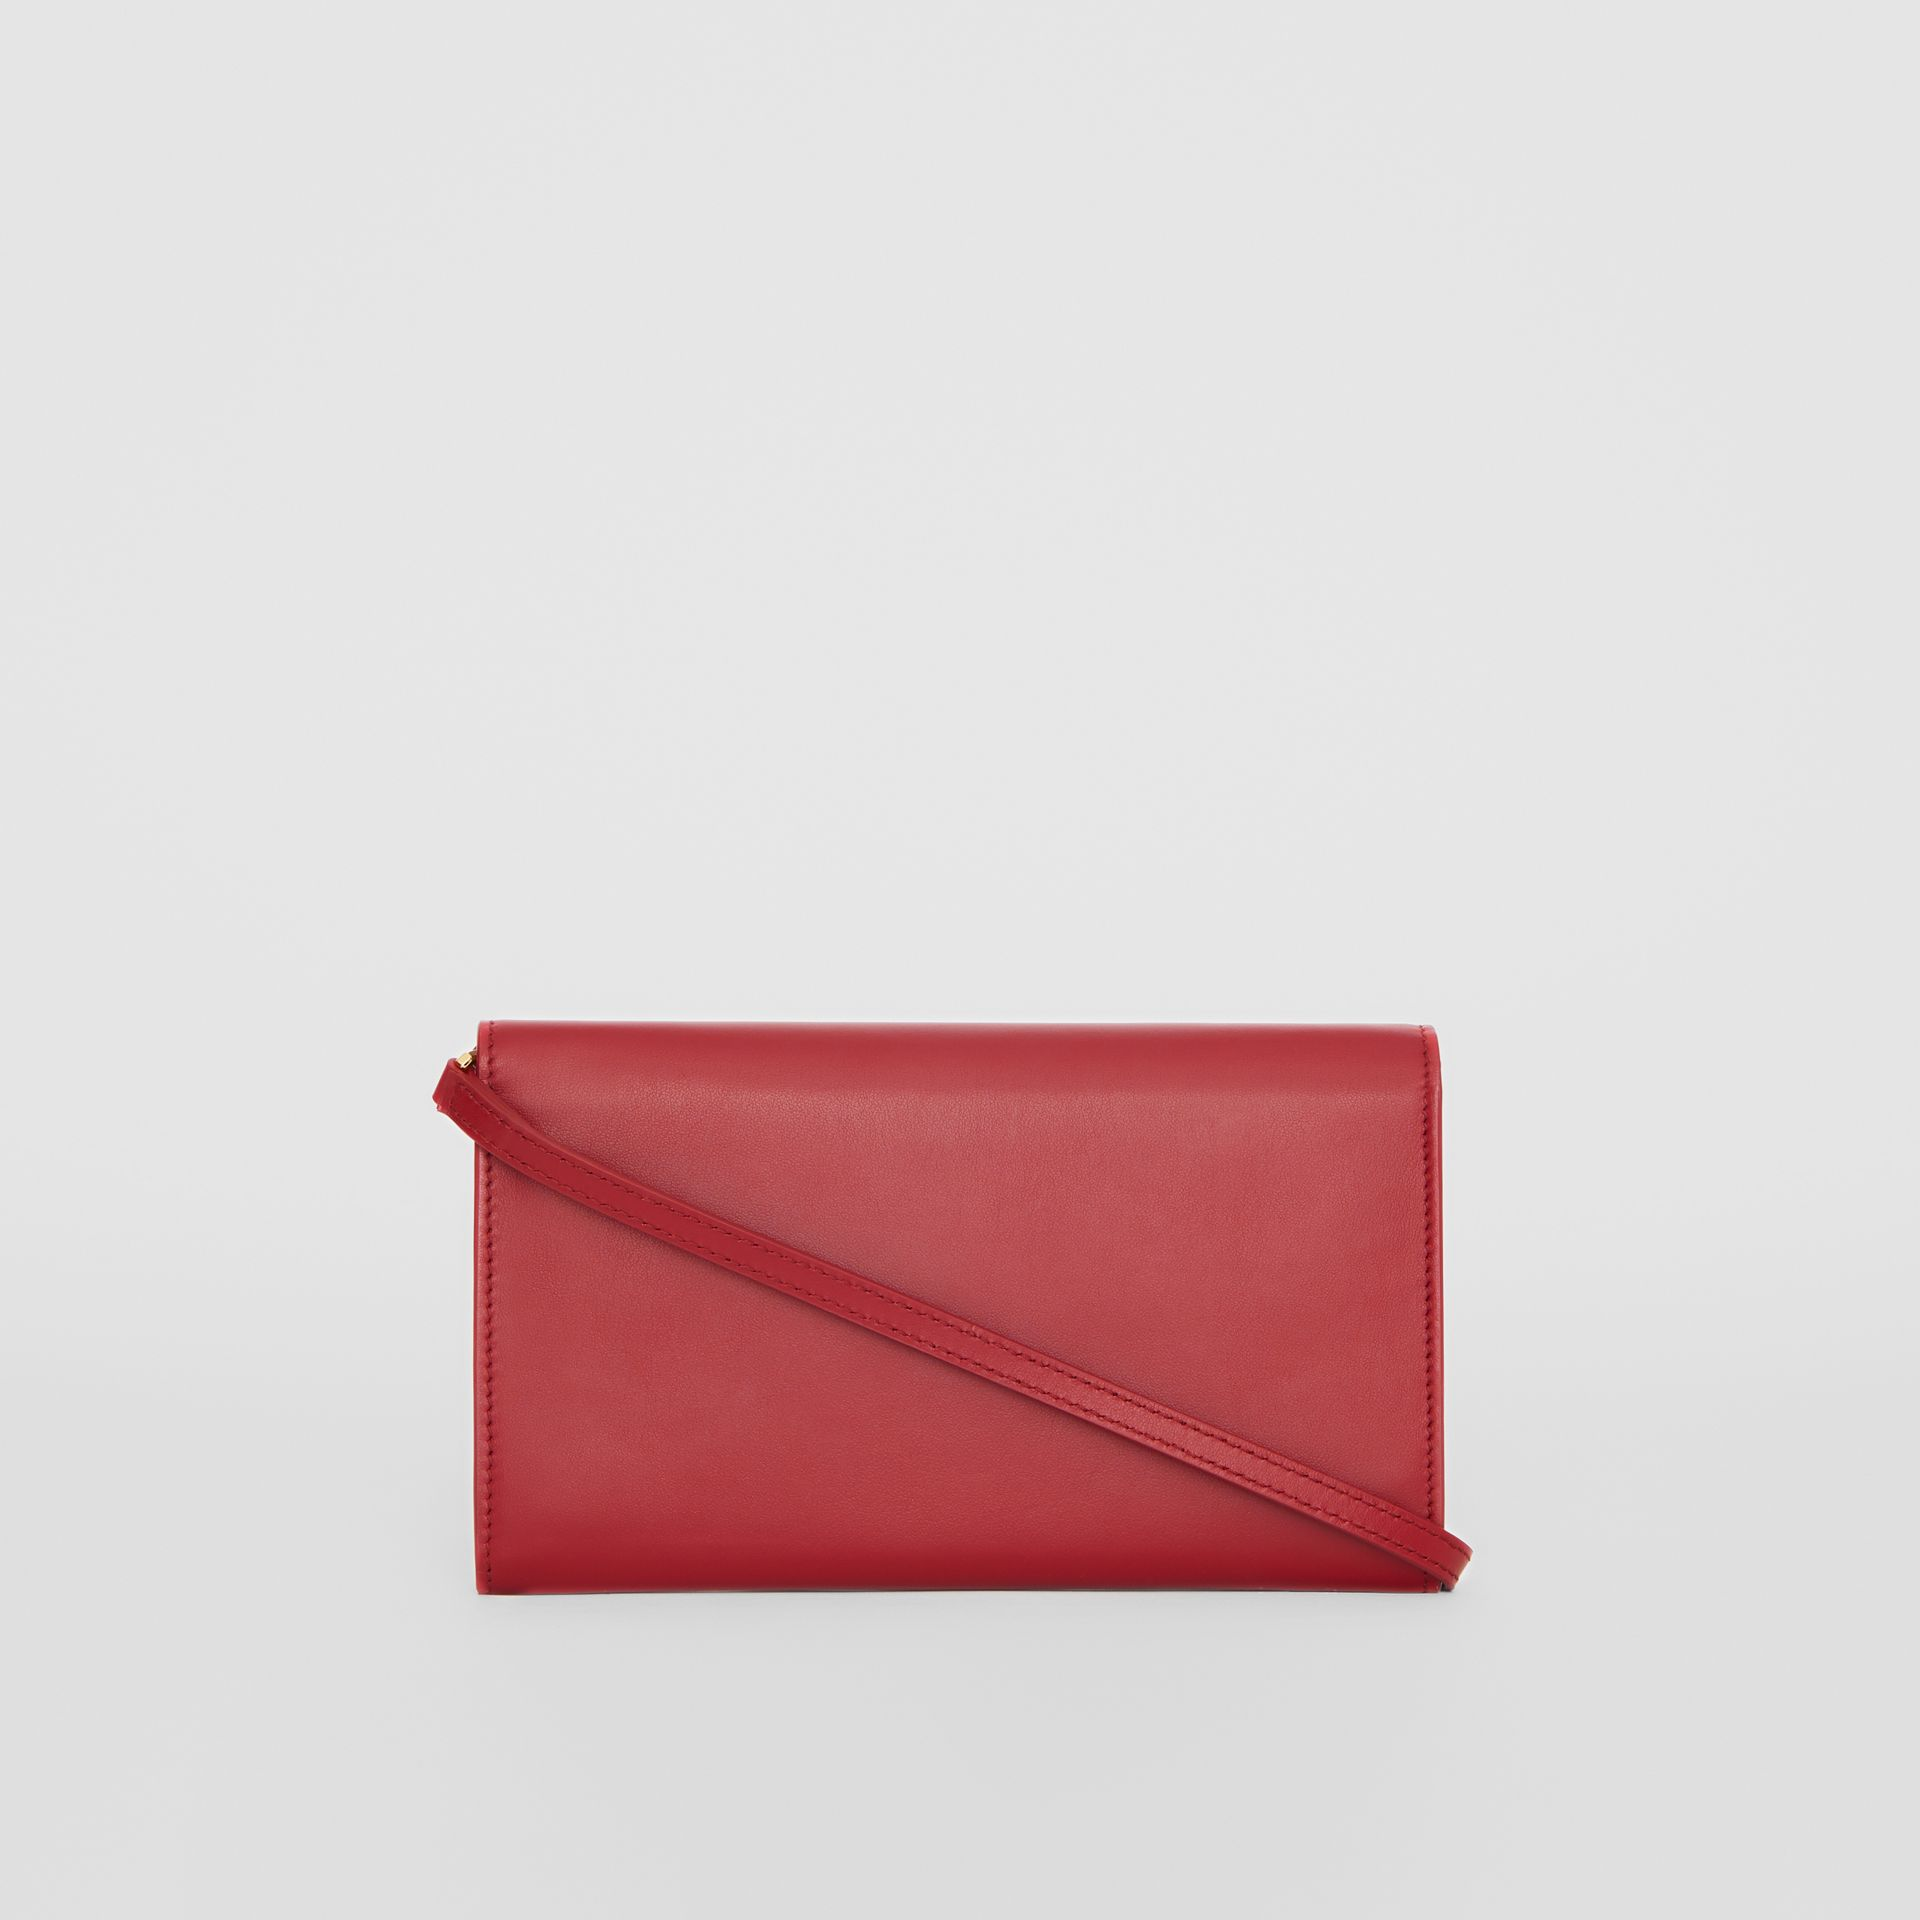 Monogram Motif Leather Wallet with Detachable Strap in Crimson - Women | Burberry - gallery image 7